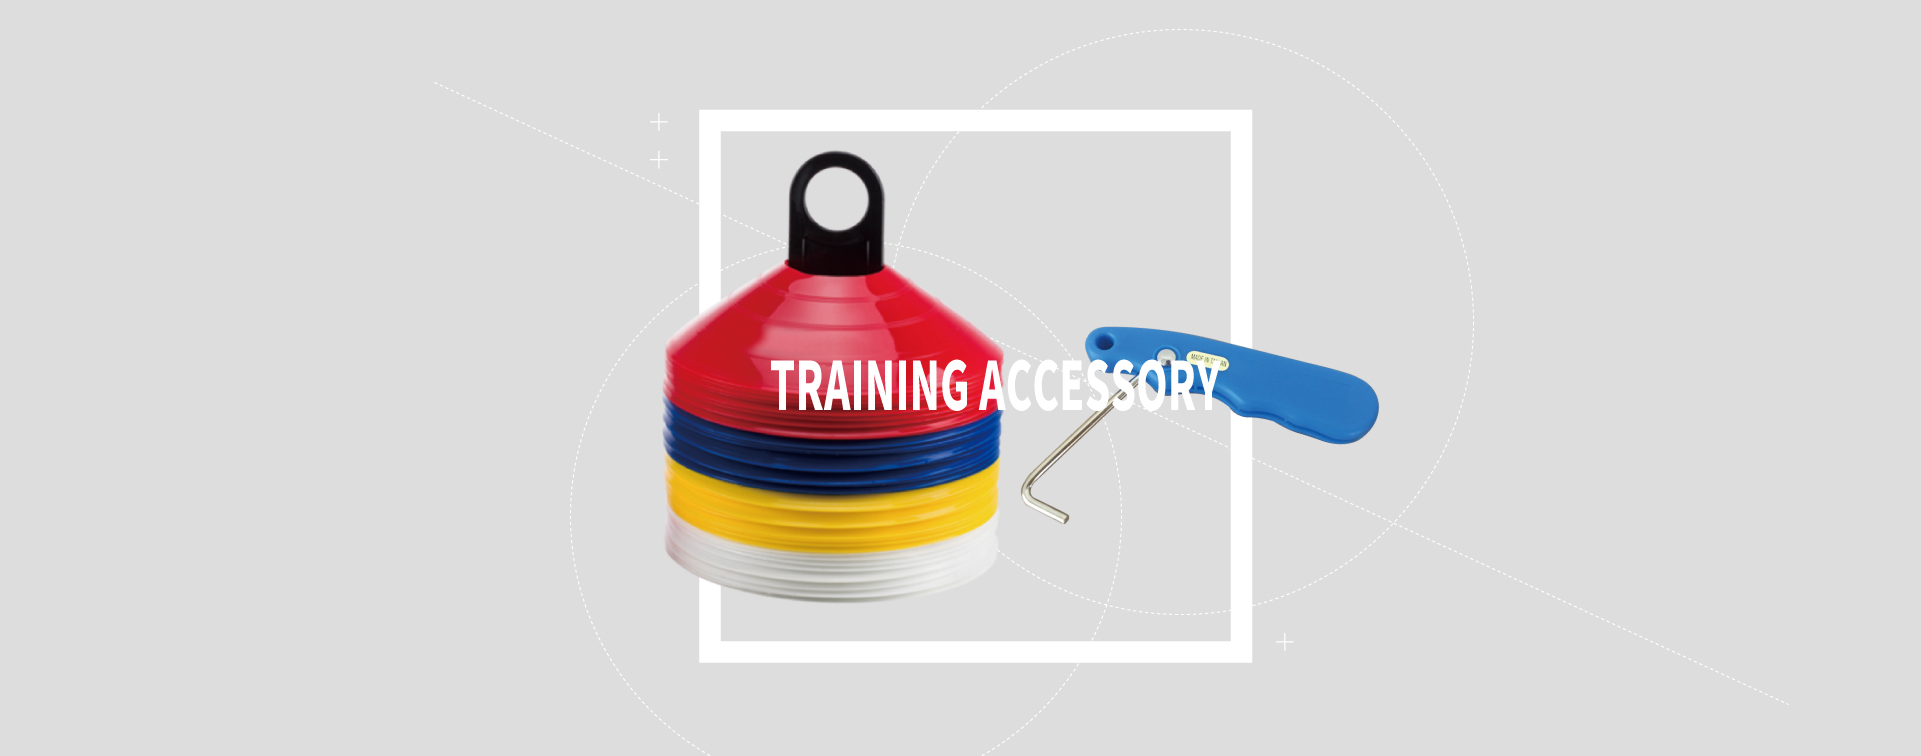 Training Accessory 訓練配件 page